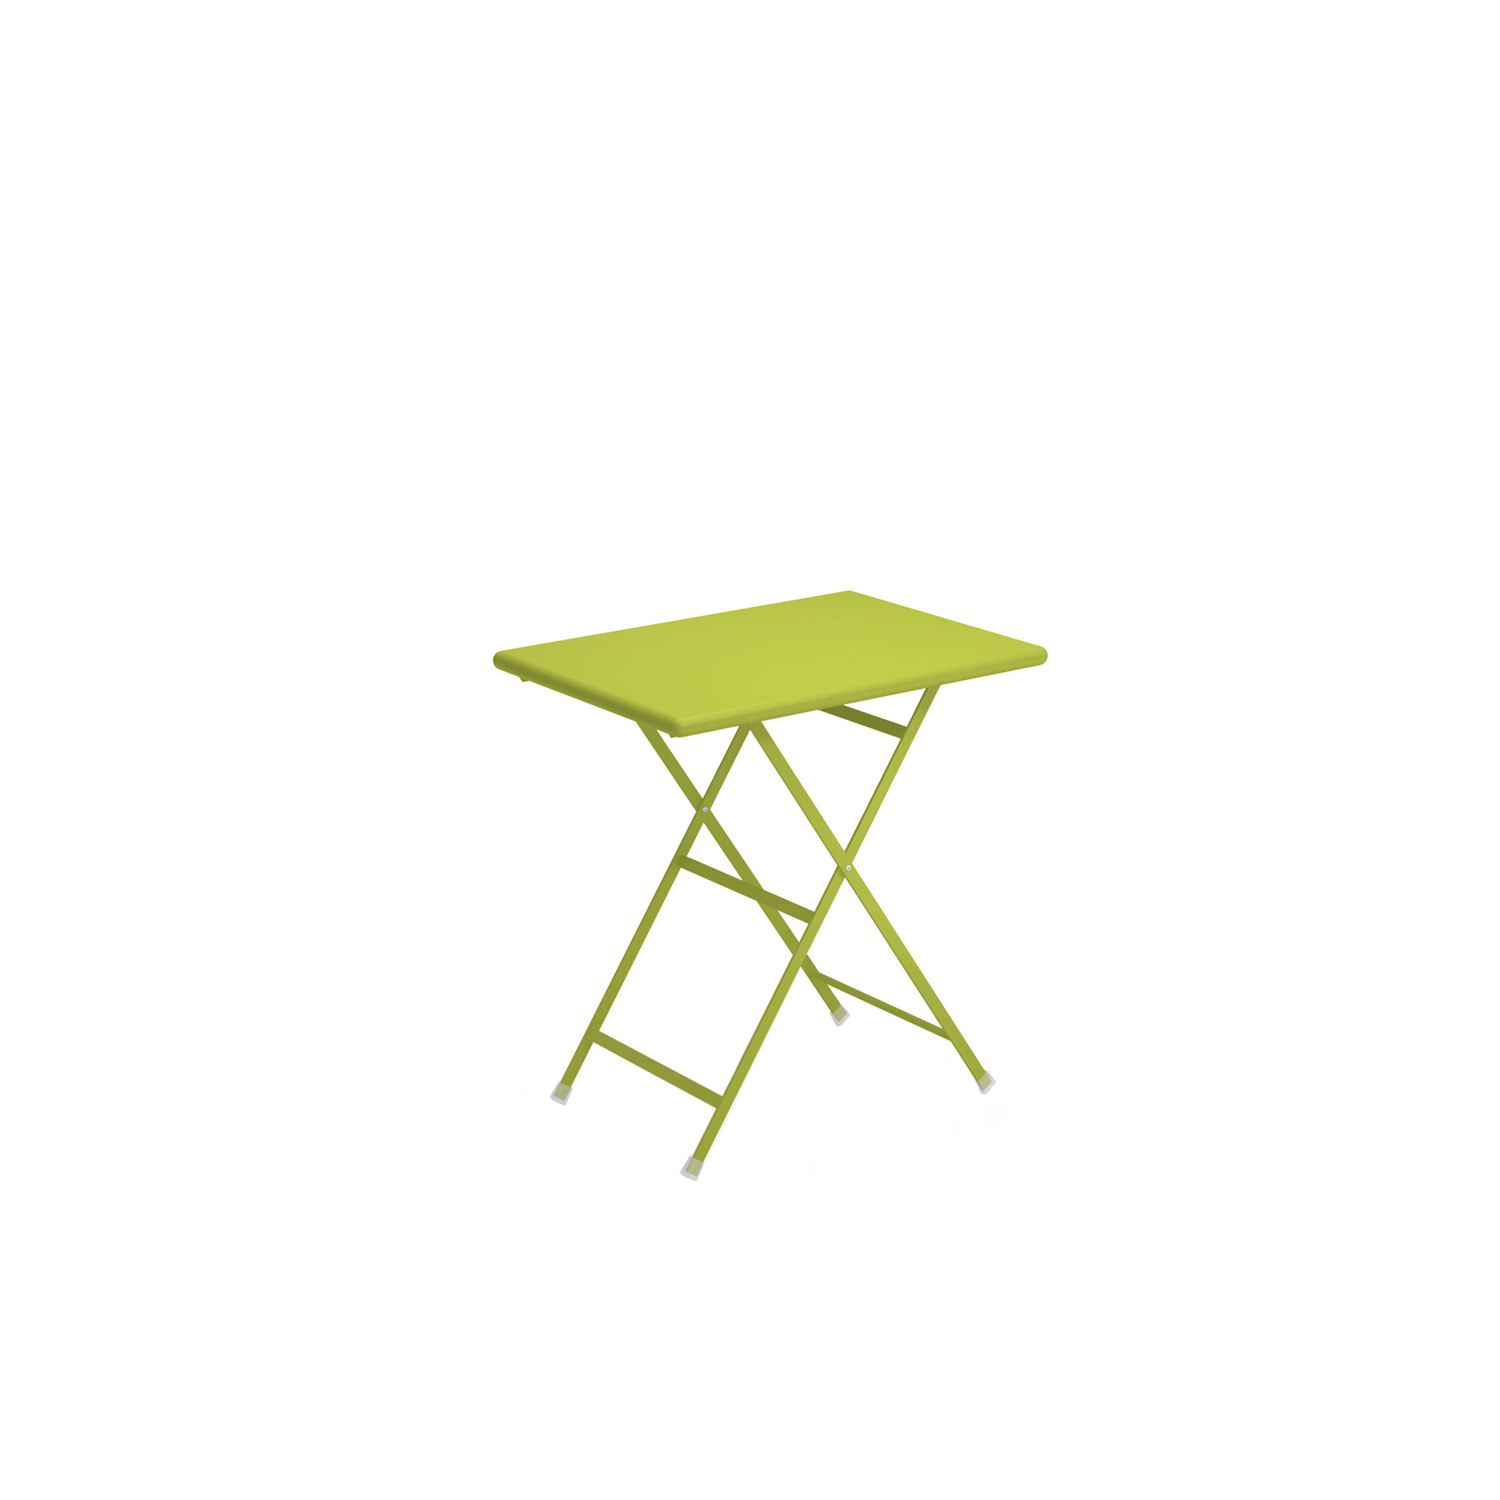 Arc en Ciel Rectangular Folding Table - <p>A range of colourful solutions to outdoor living, equally suited to balconies at home or large green gardens. Different sized tables, chairs with or without armrests and footrests, all of which can be folded making this furniture both informal and dynamic. This collection, made from steel, is full of bright, eye-catching solutions that enliven every context thanks to the wide choice of colours available.</p>